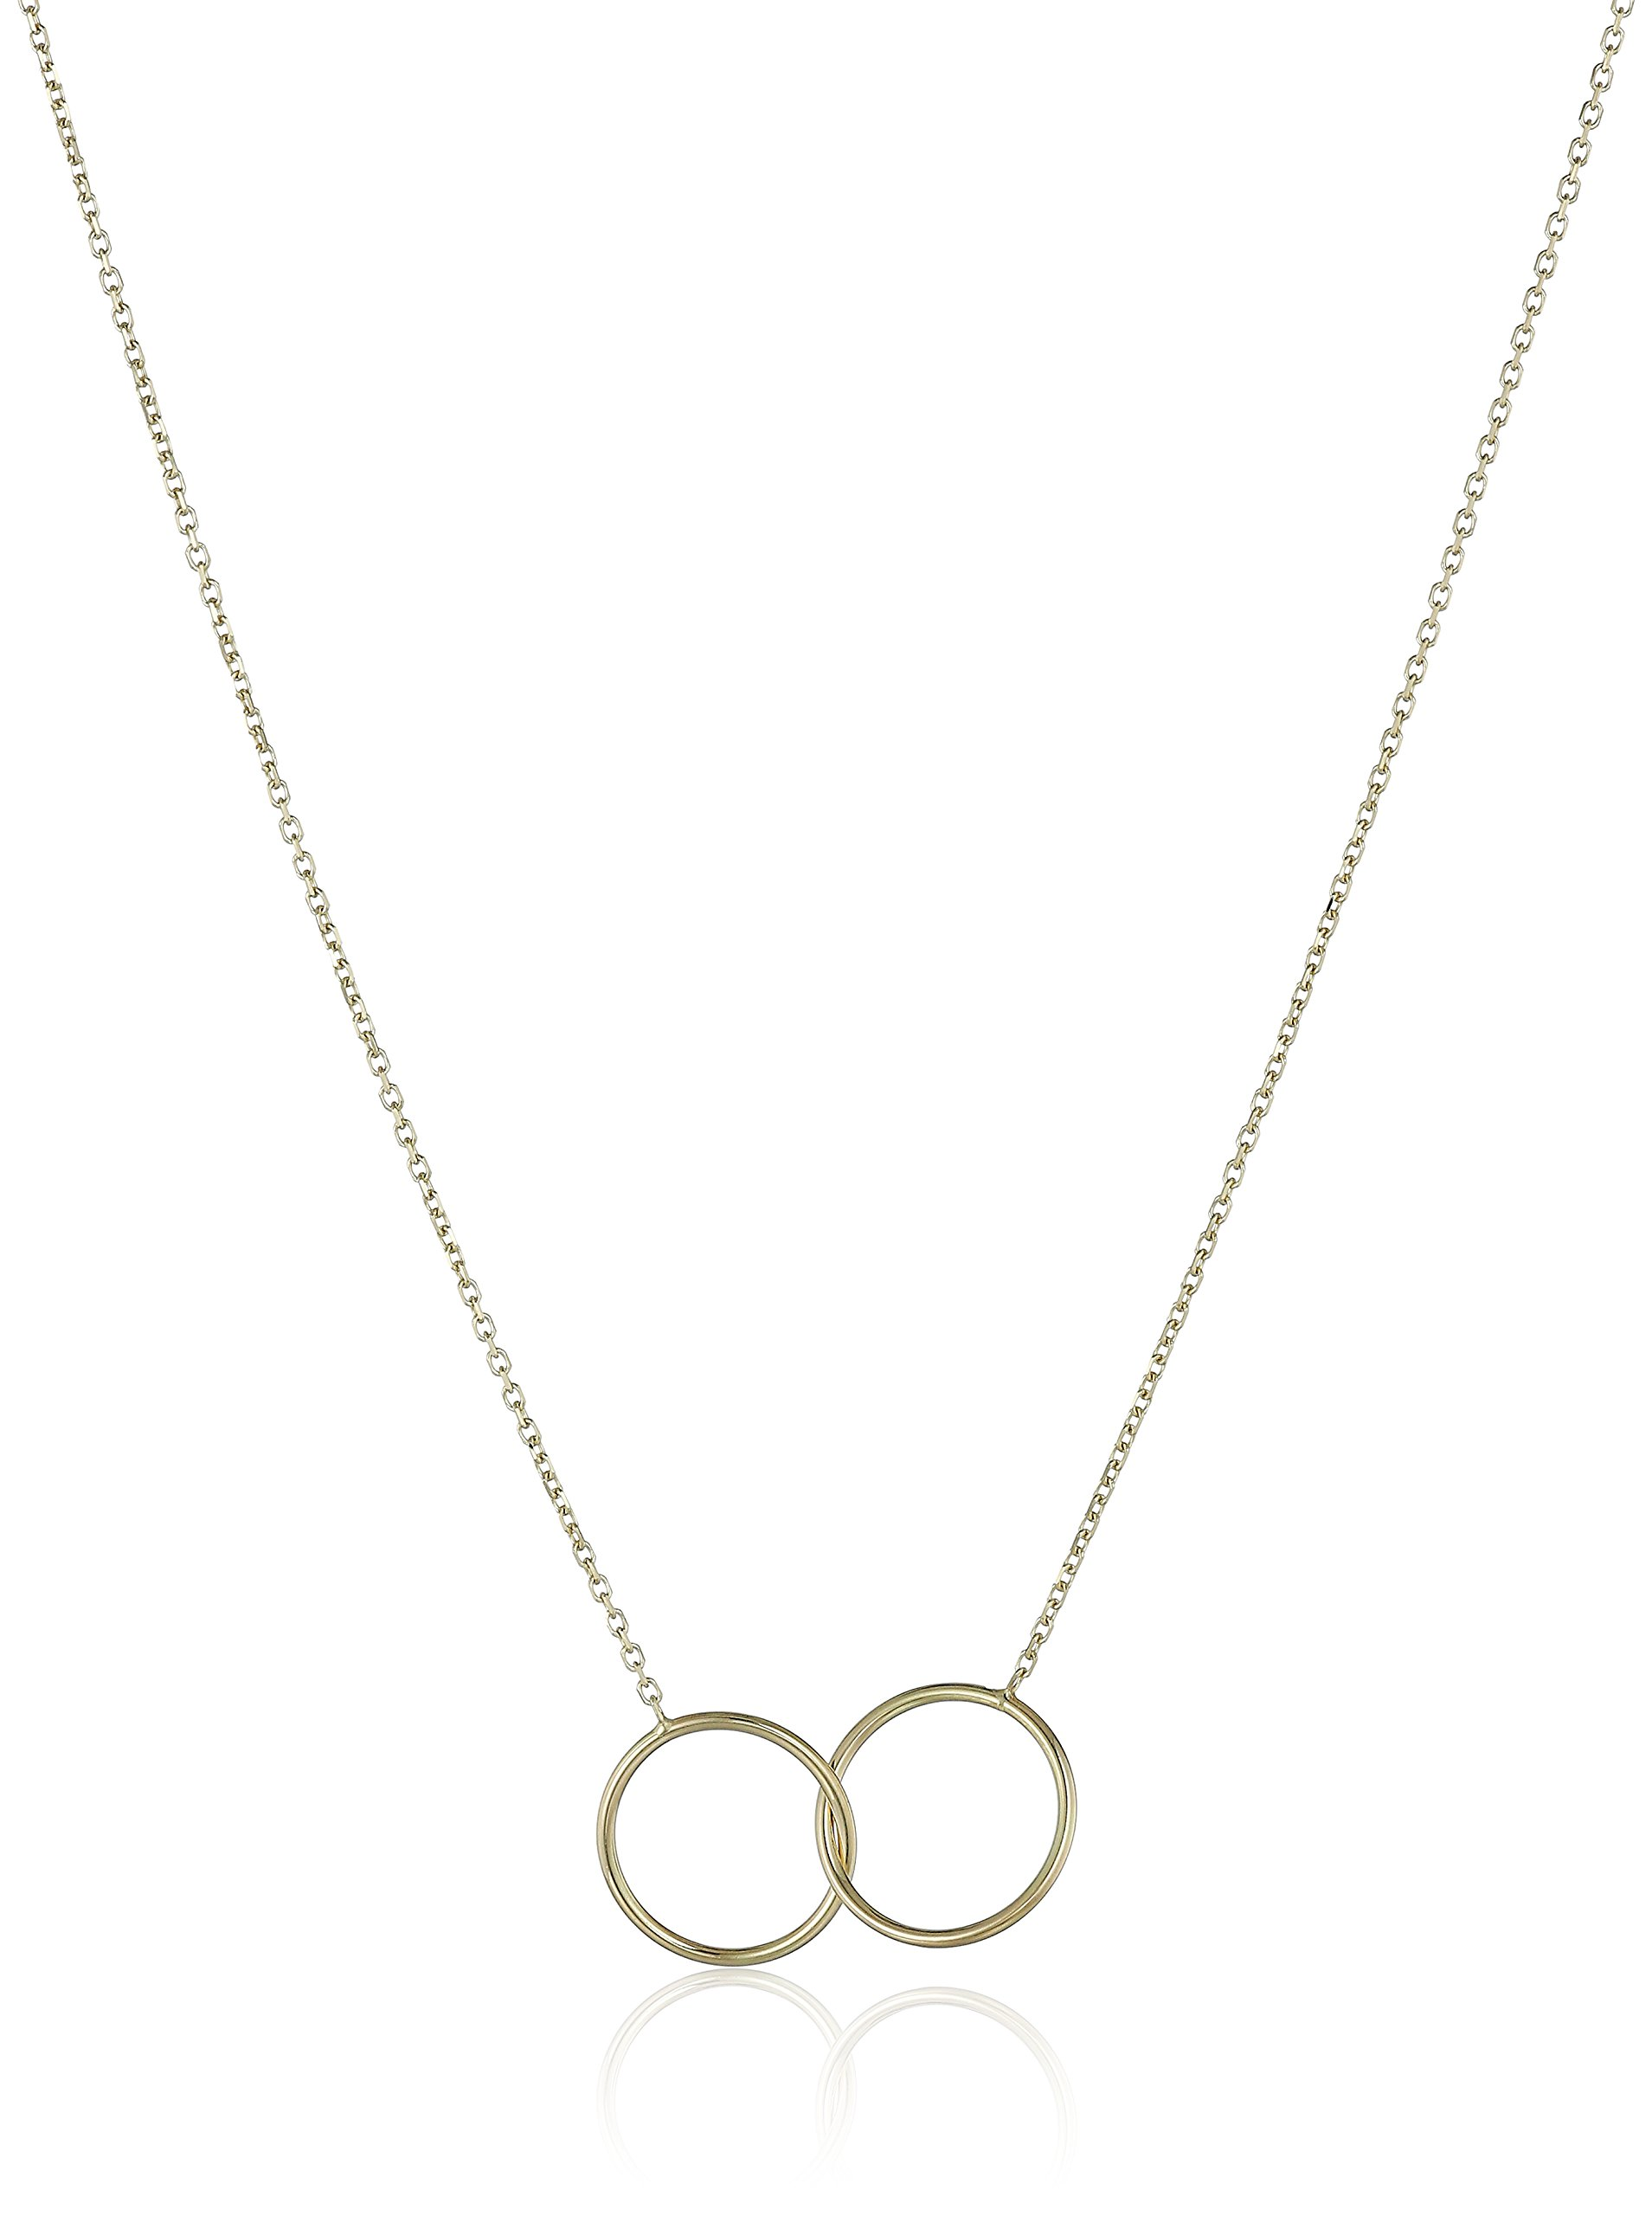 14k Italian Yellow Gold Double Circle Necklace, Adjustable 16'' to 17''